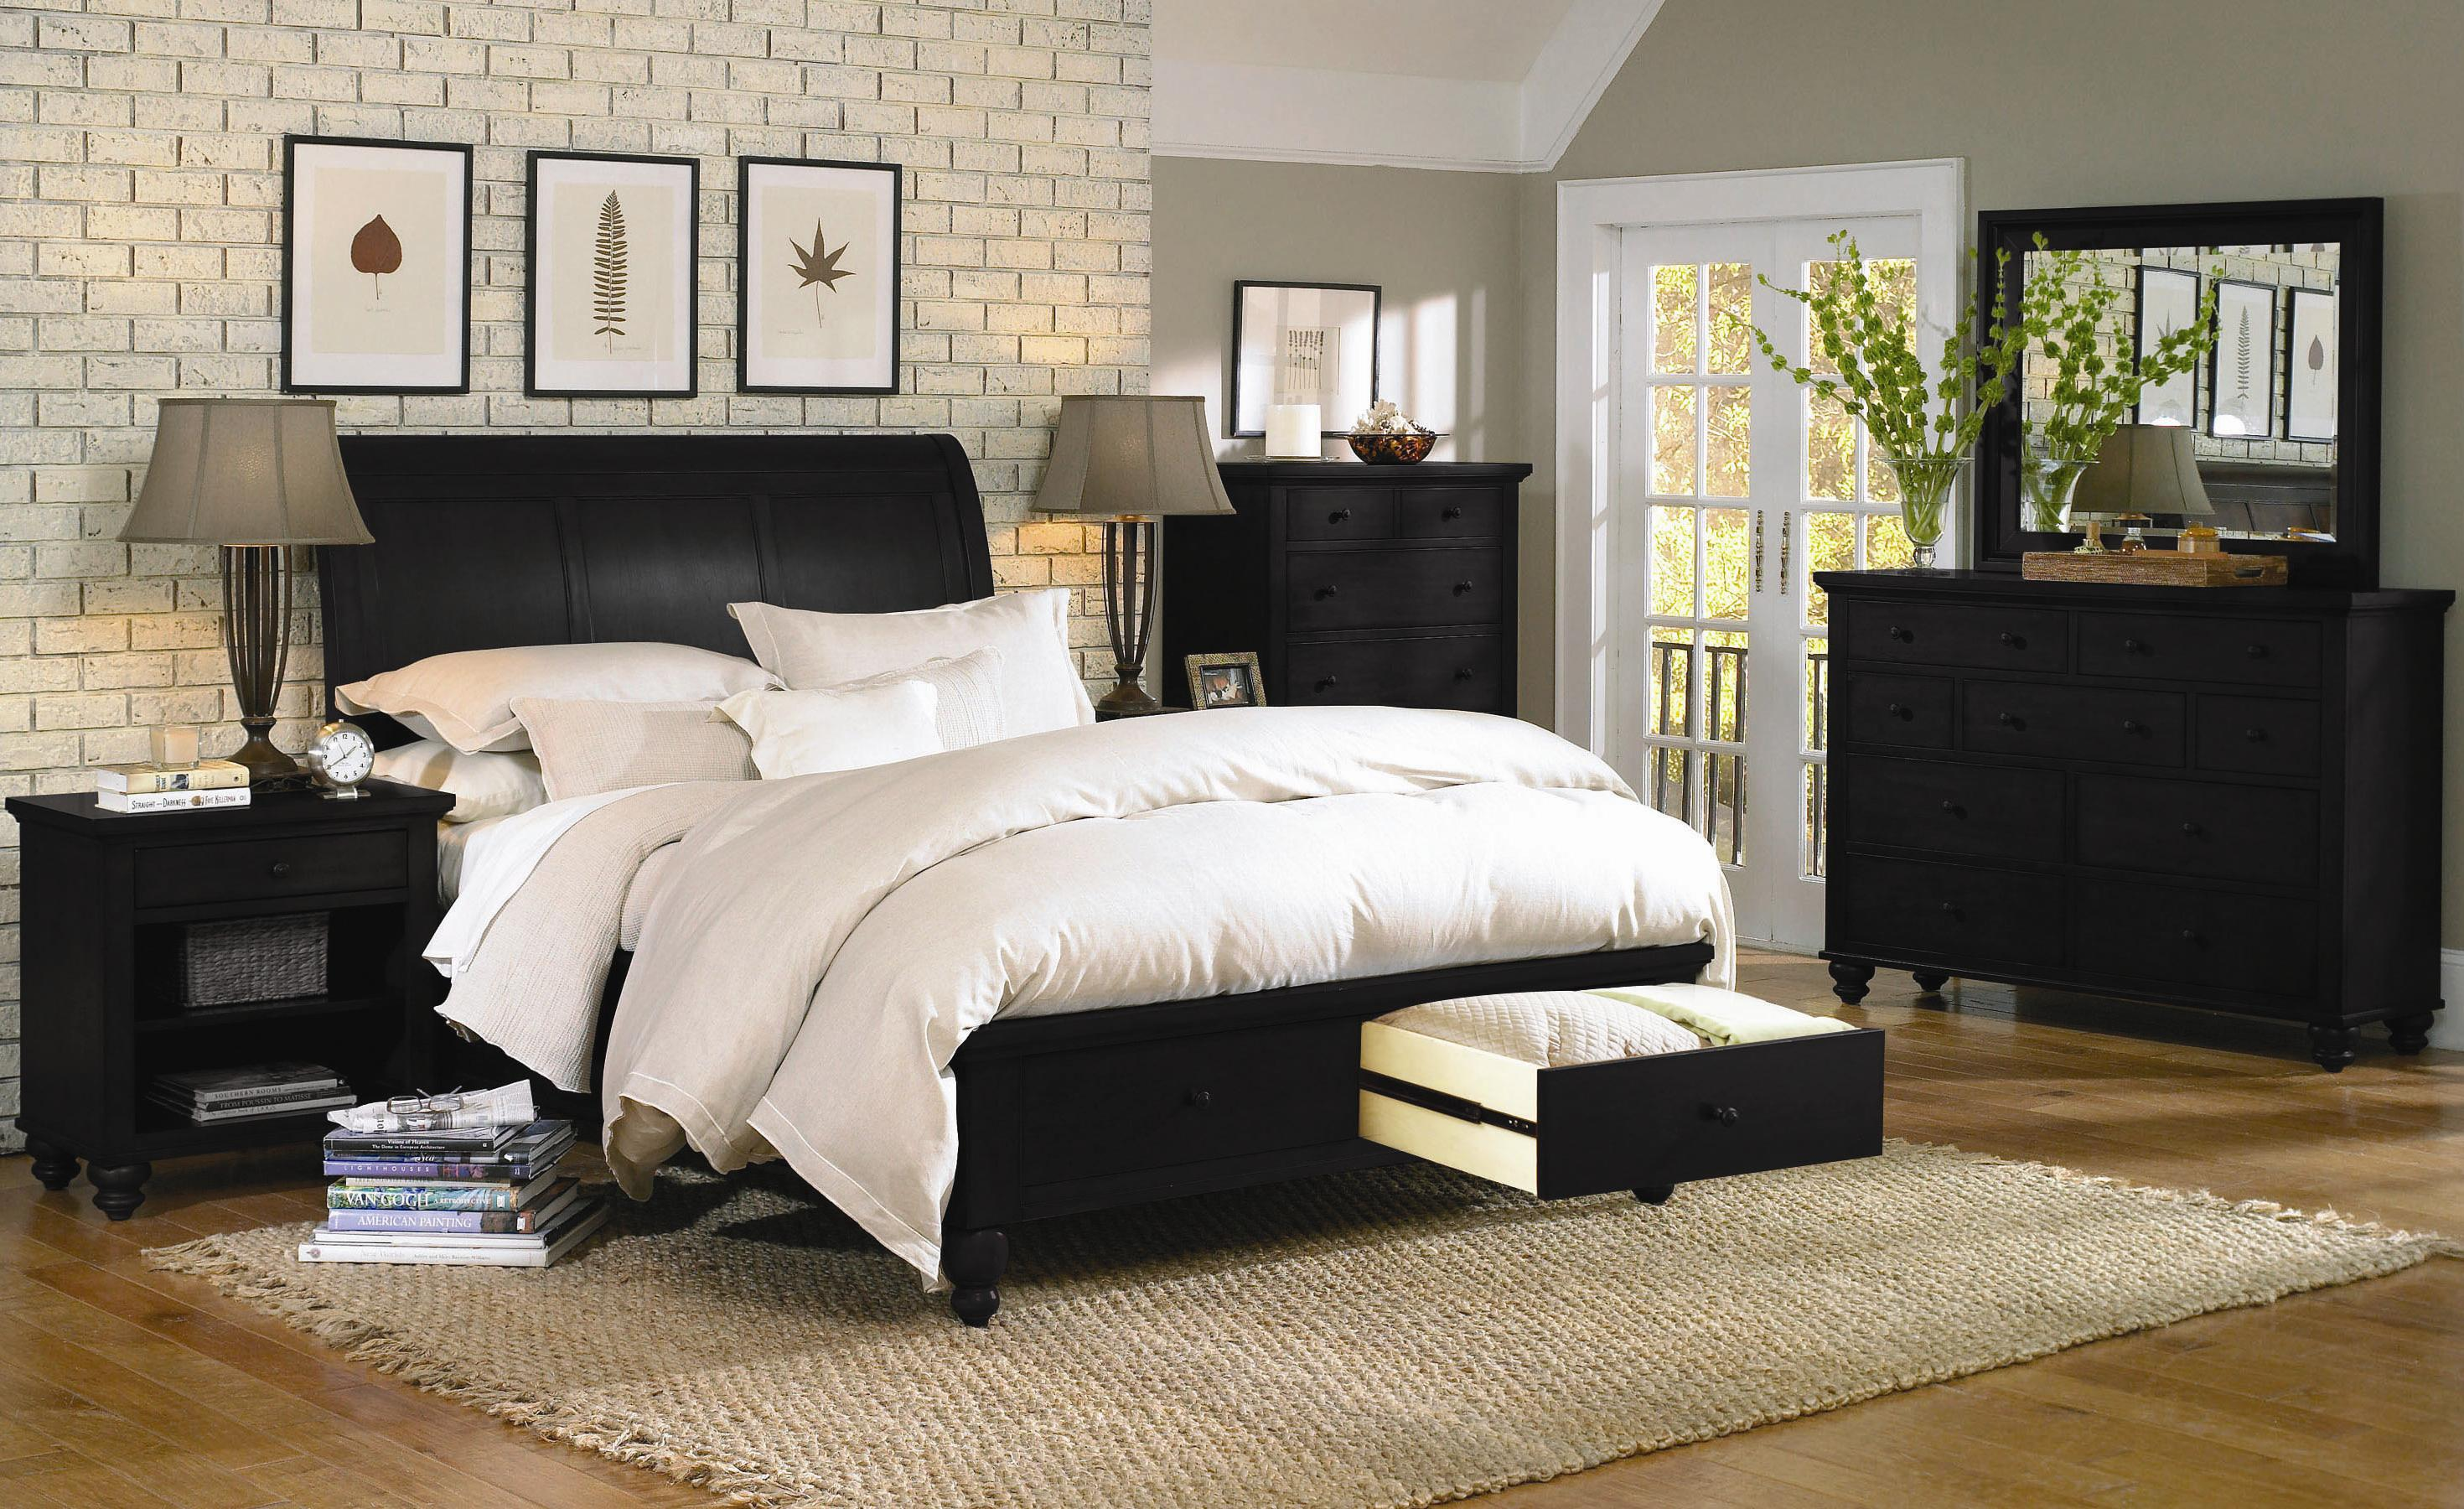 Aspenhome Cambridge King Size Bed With Sleigh Headboard